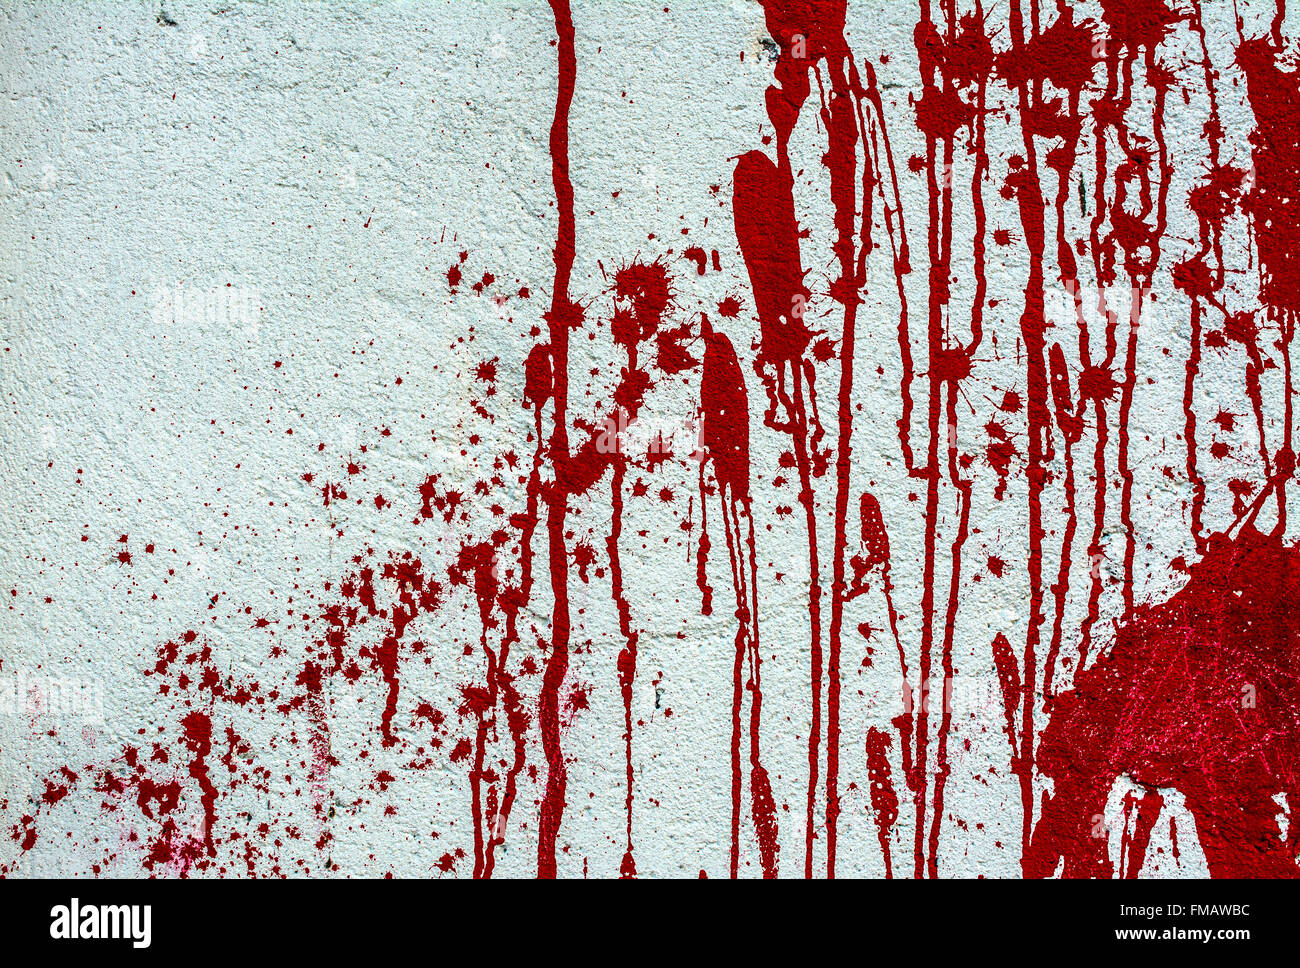 Blood on white wall texture - Stock Image